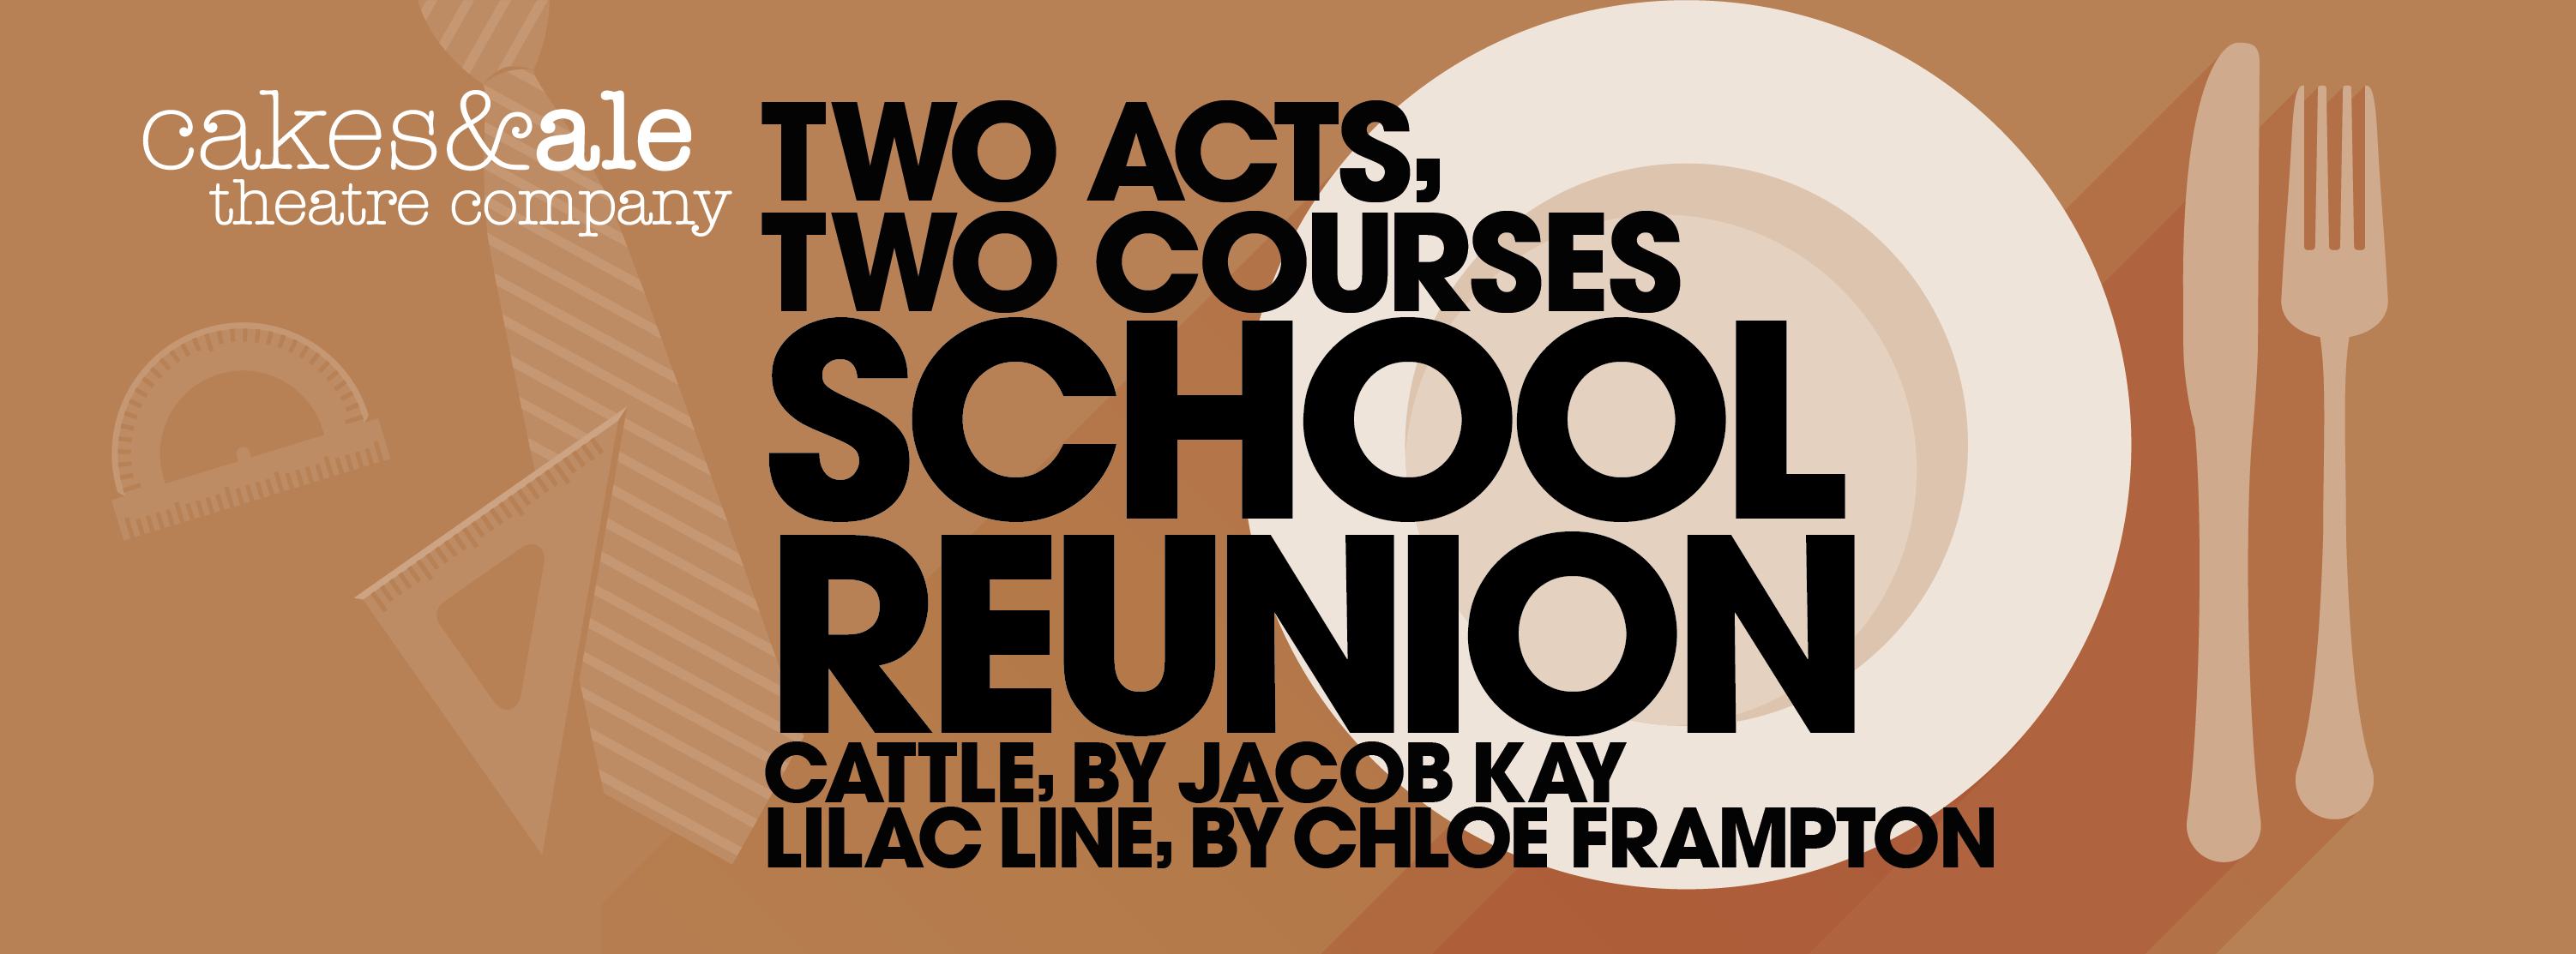 Two Acts, Two Courses - School Reunion